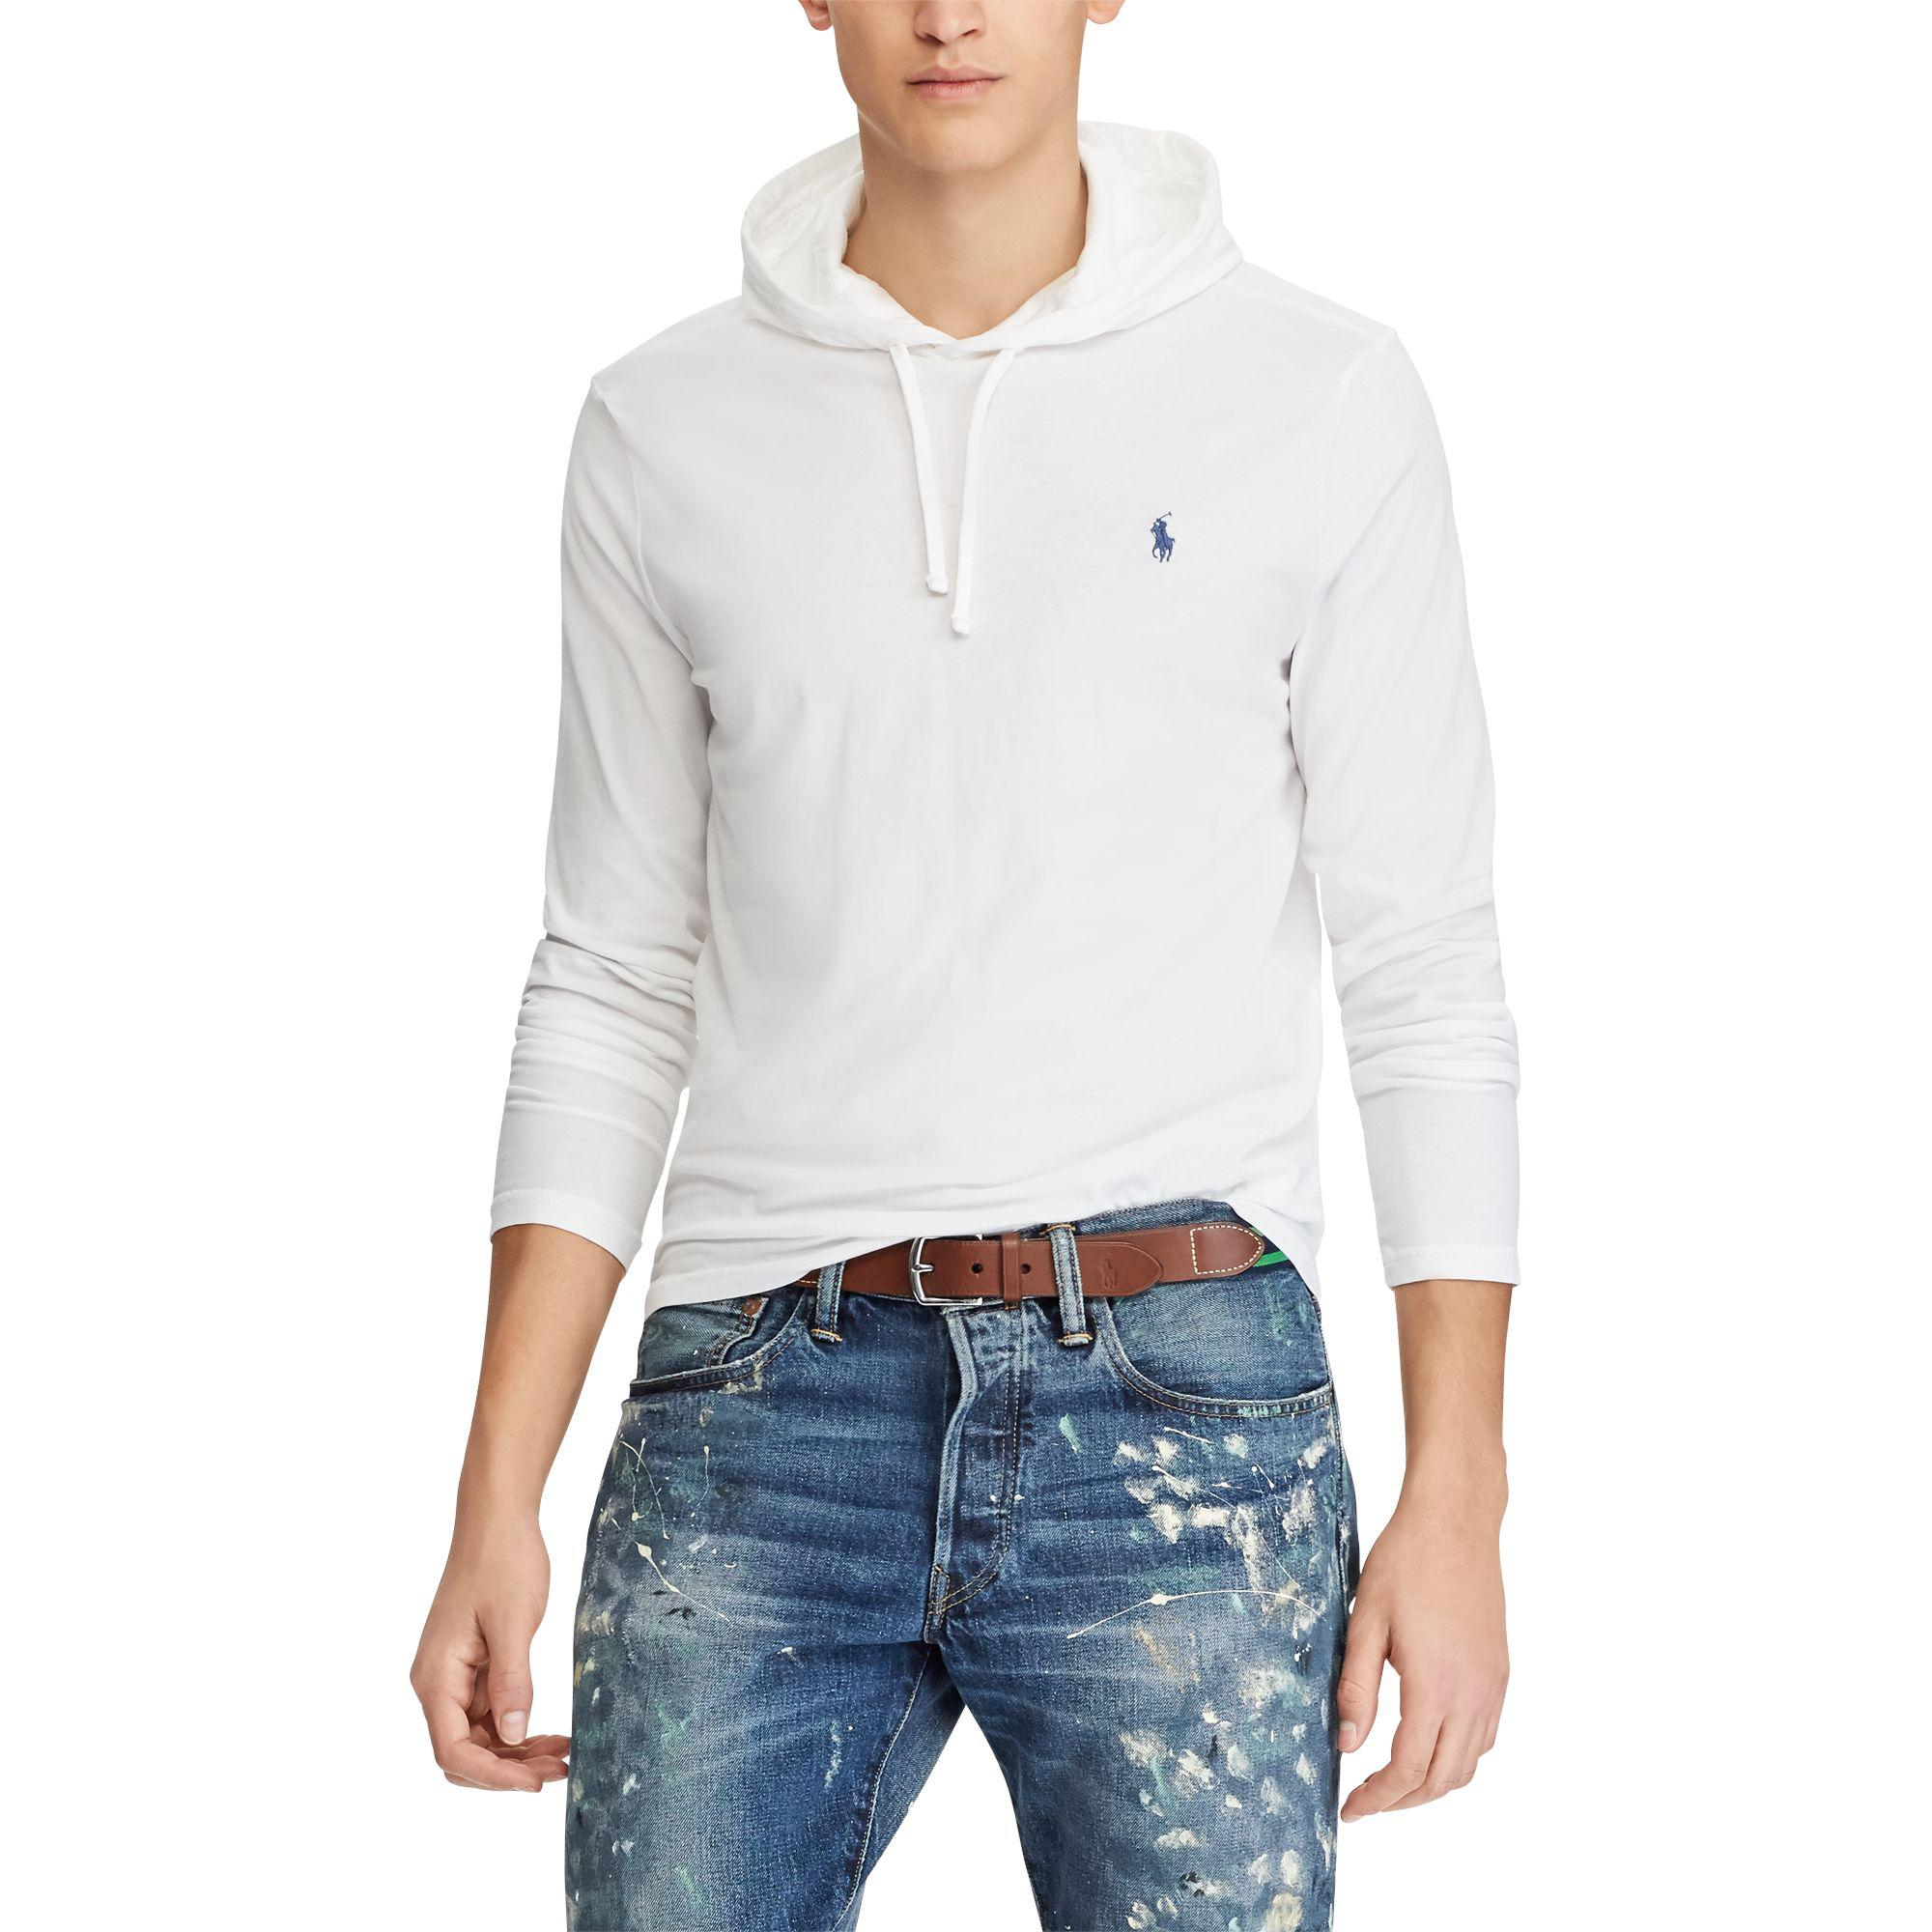 ddc3c361d Polo Ralph Lauren Cotton Jersey Hooded T-shirt in White for Men - Lyst